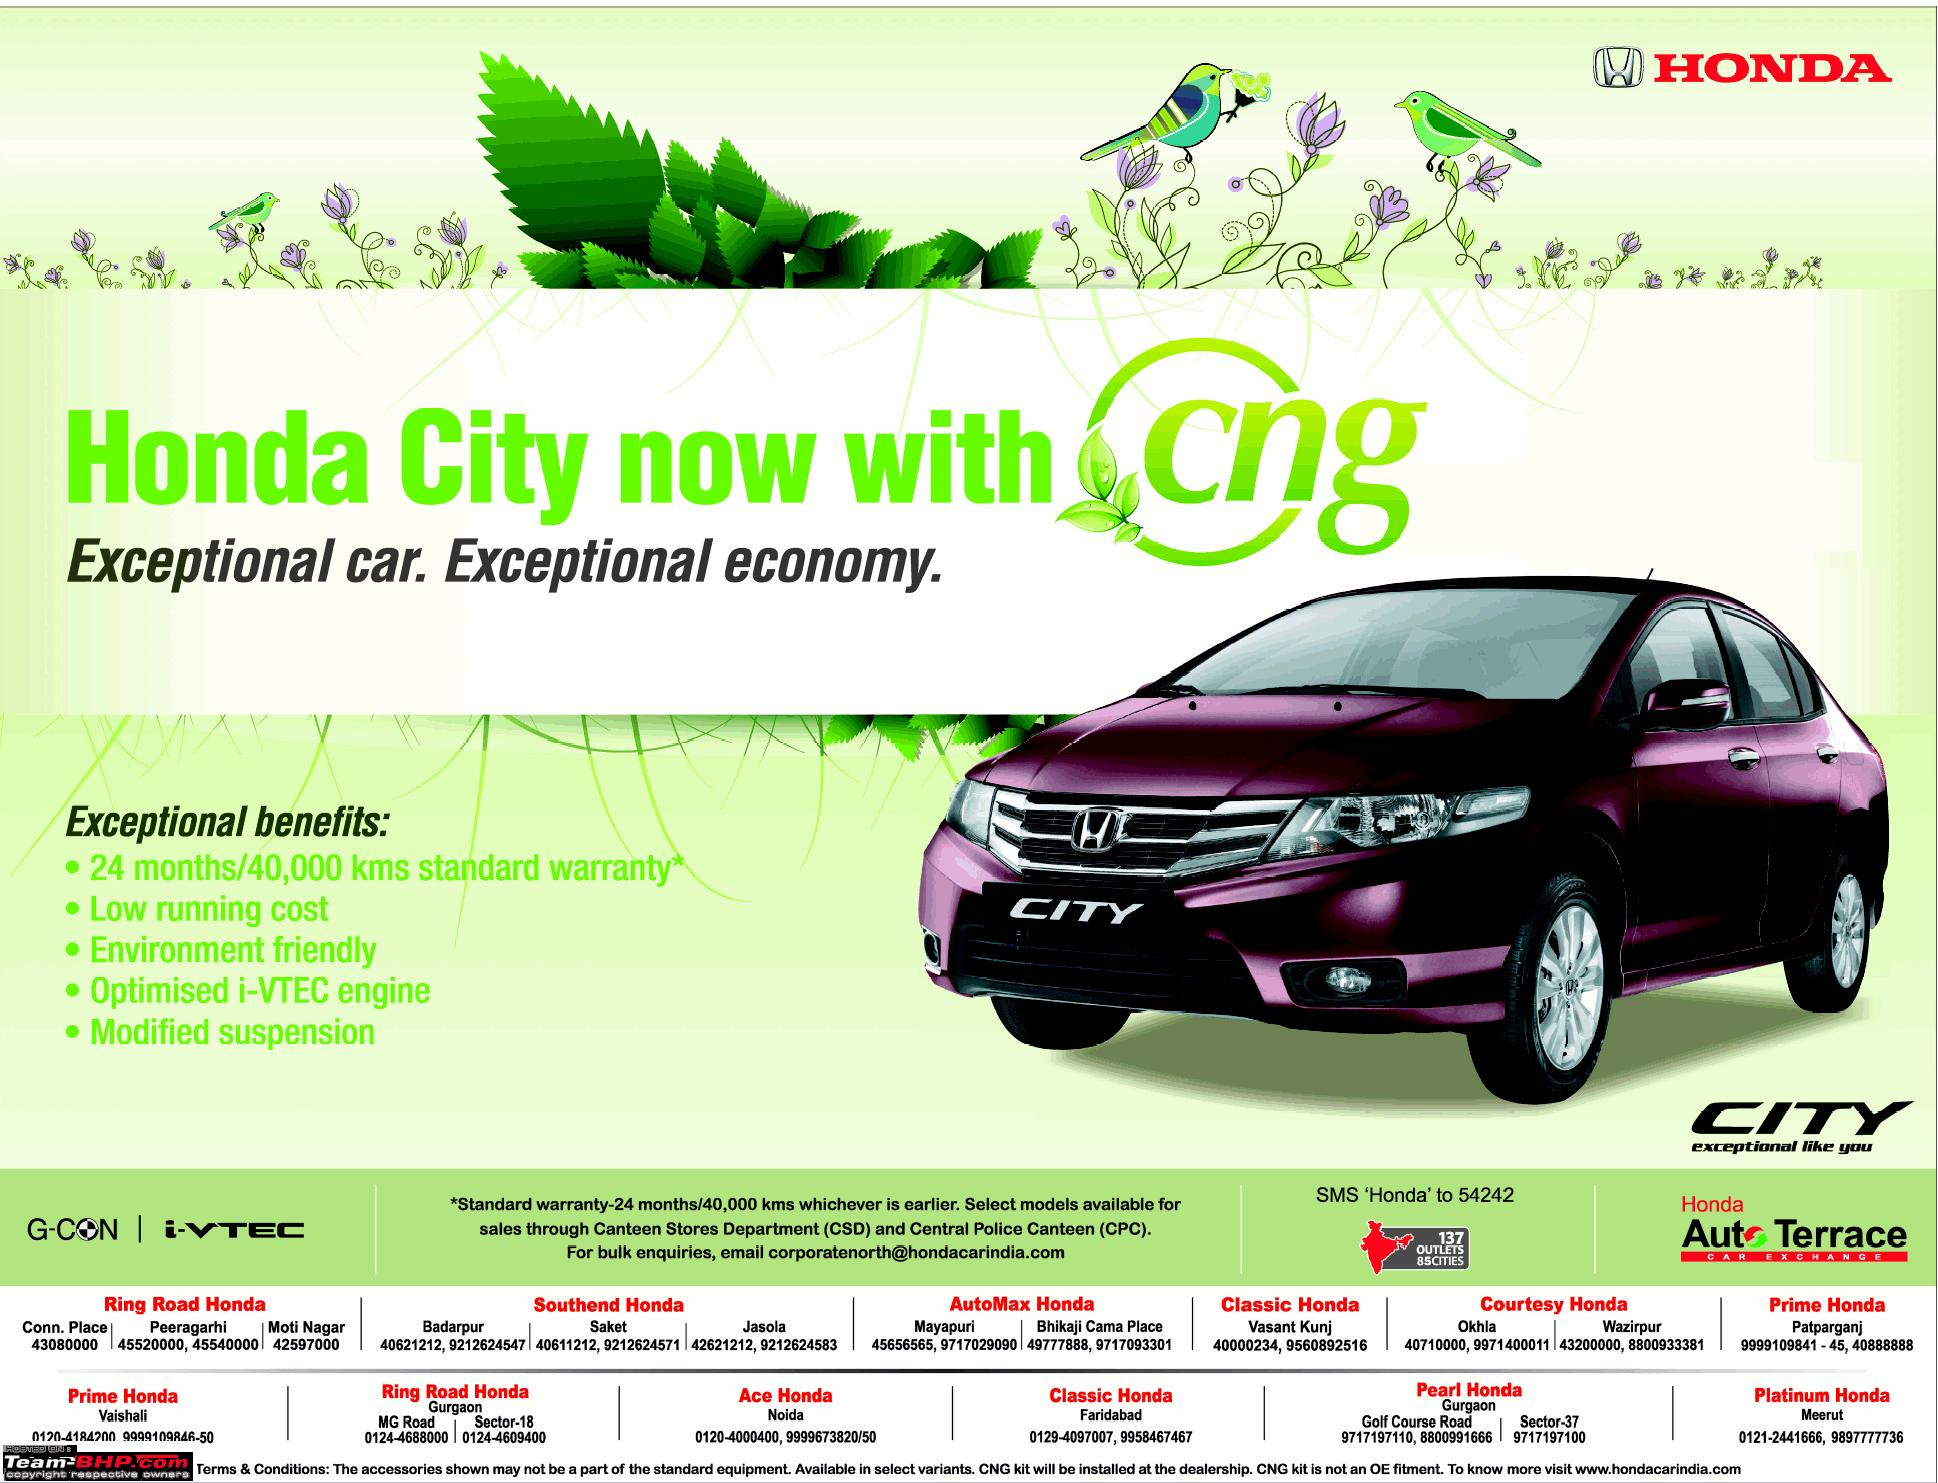 Honda City CNG To Be Launched In October 2012 EDIT